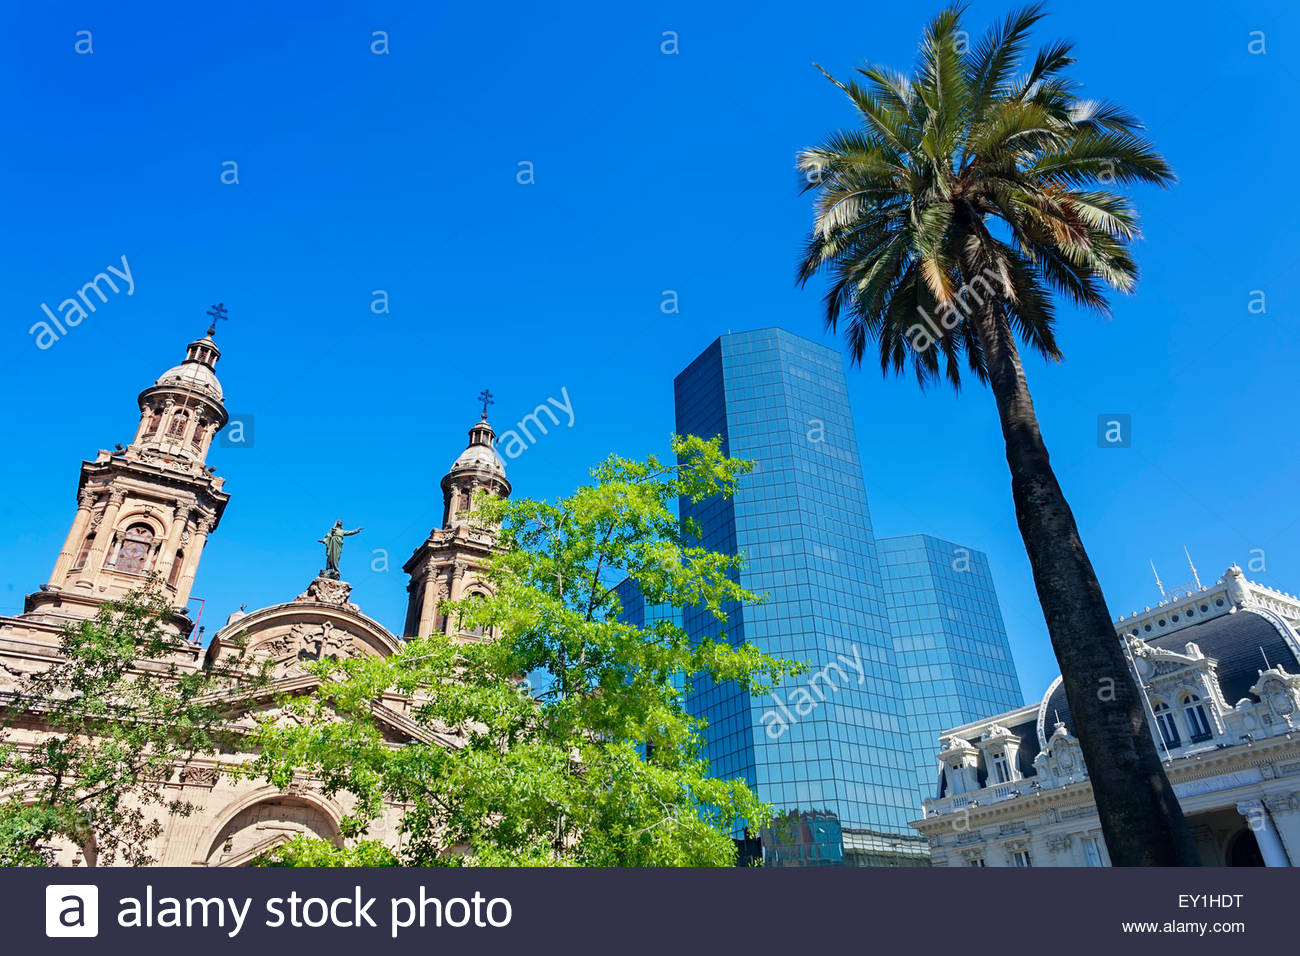 Metropolitan Cathedral, Santiago, Chile, South America - Stock Image